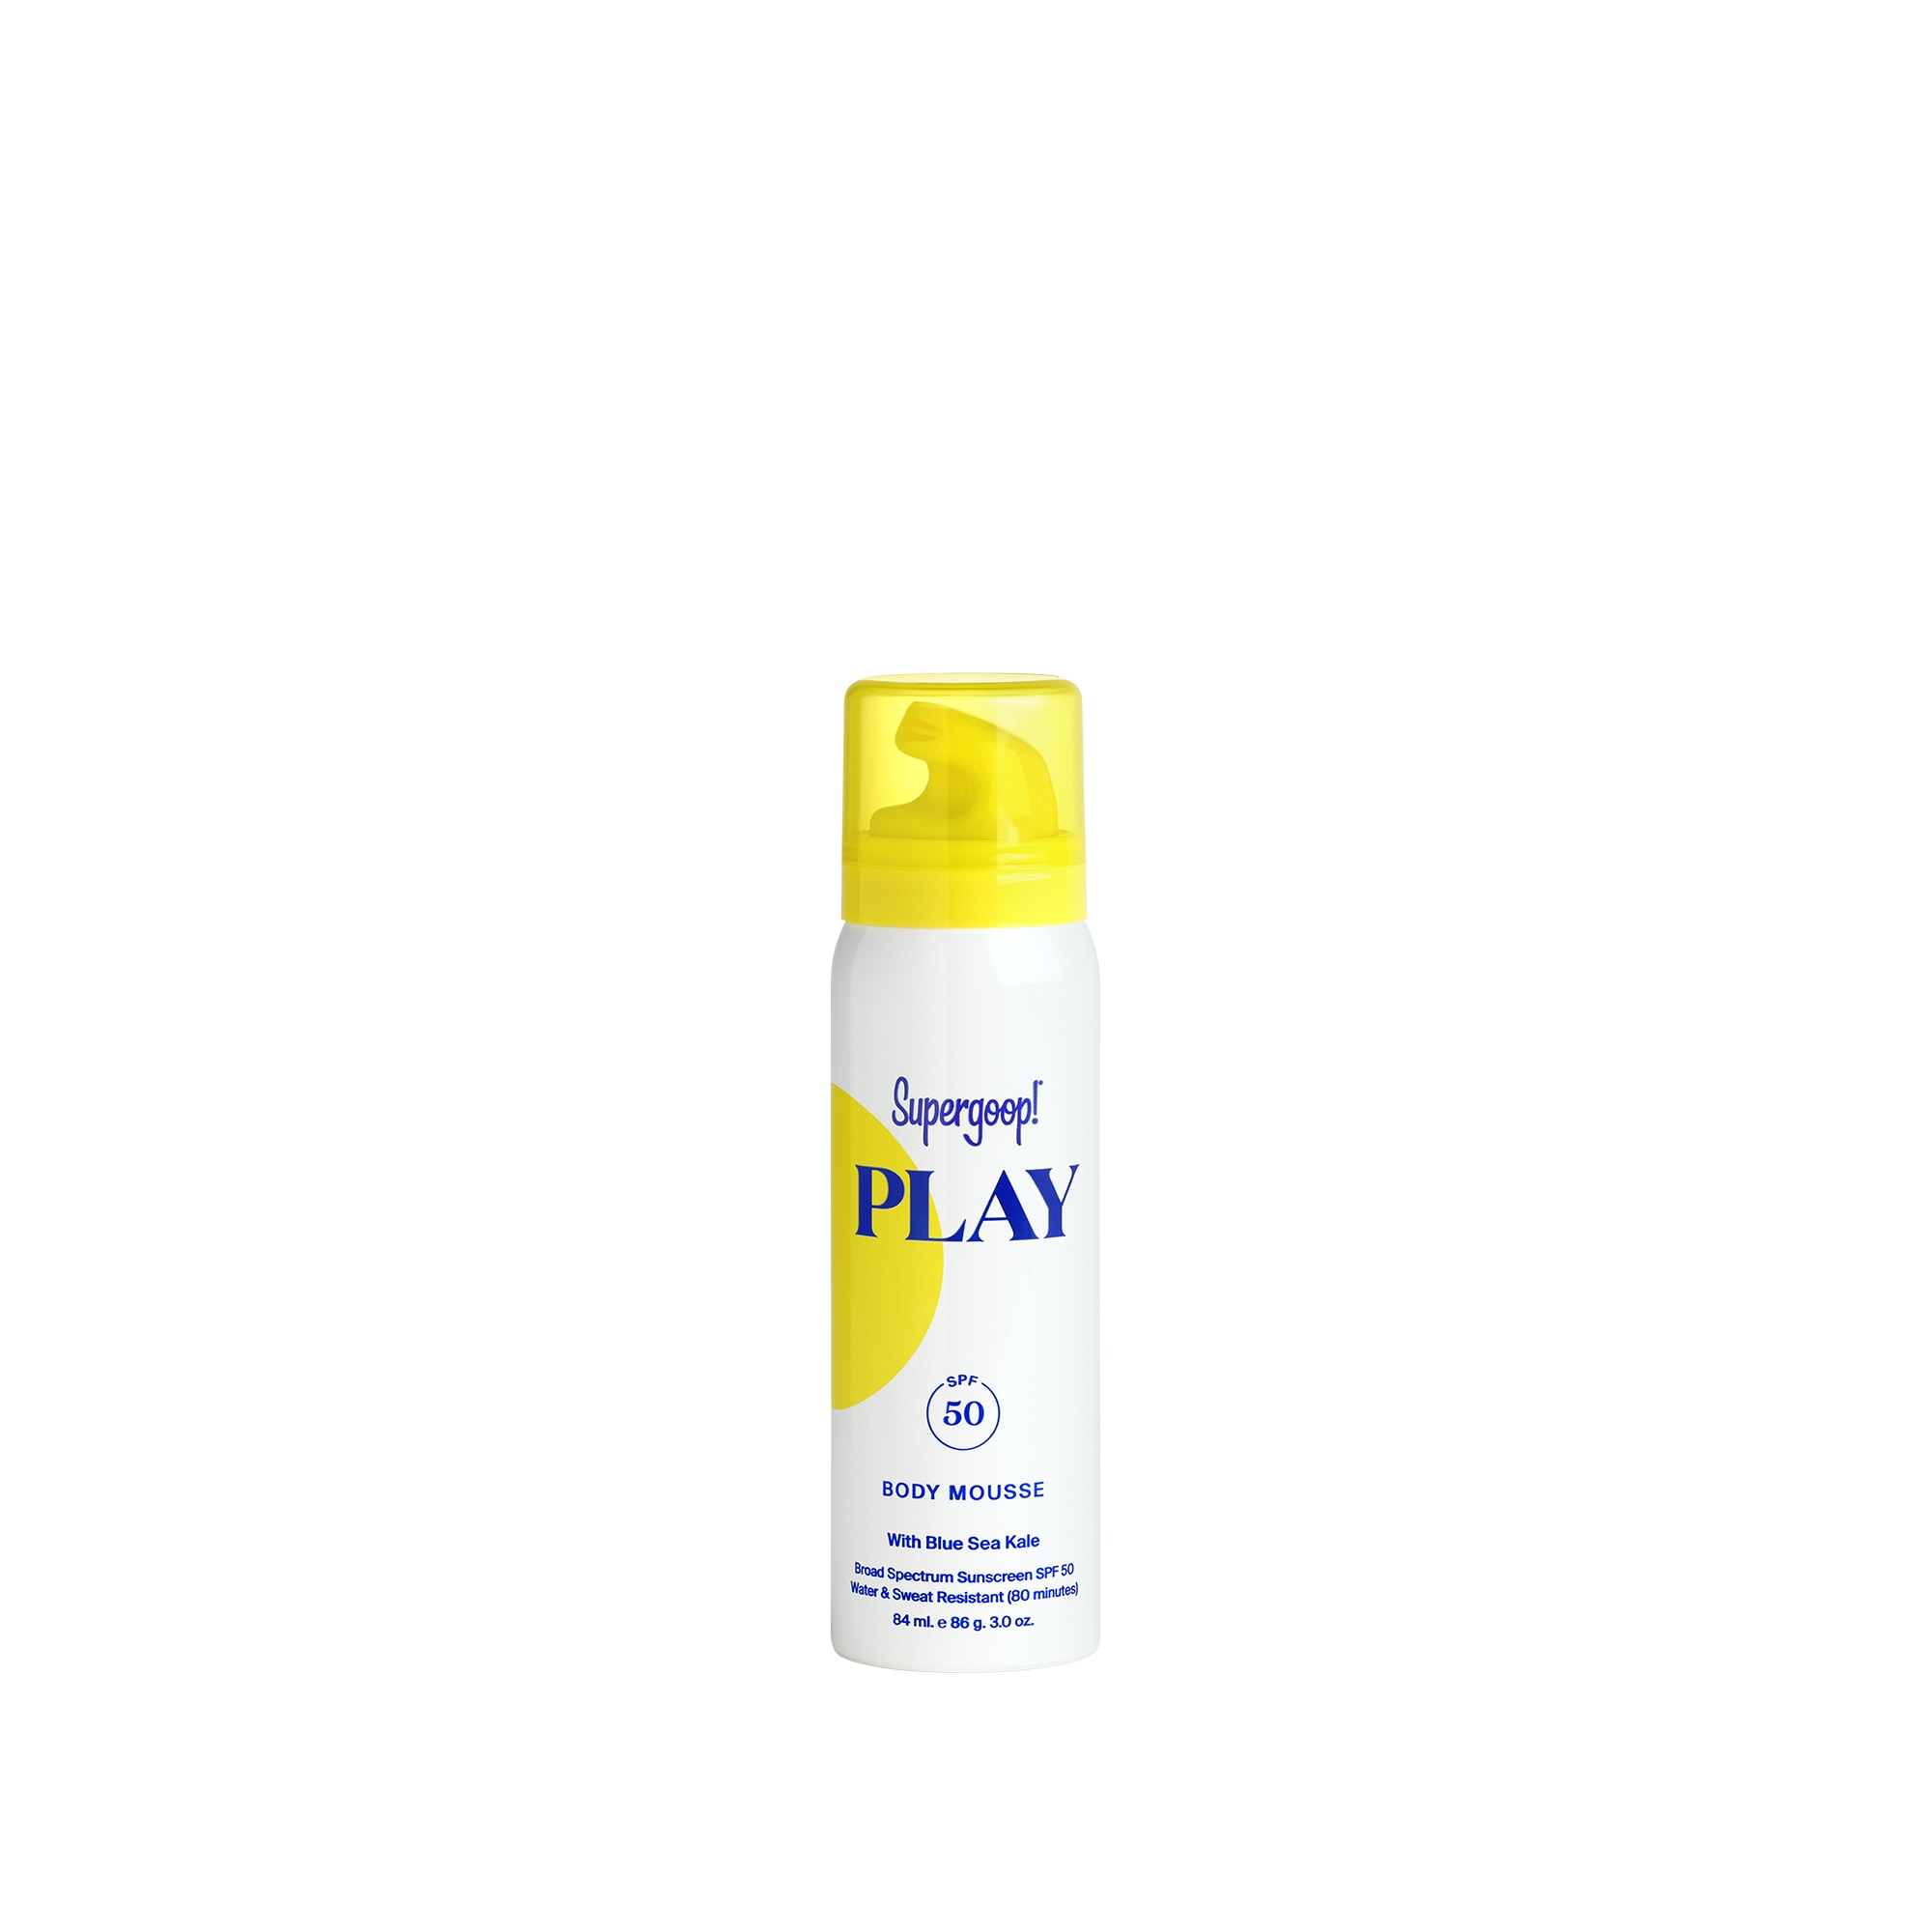 PLAY BODY MOUSSE SPF 50 WITH BLUE SEA KALE